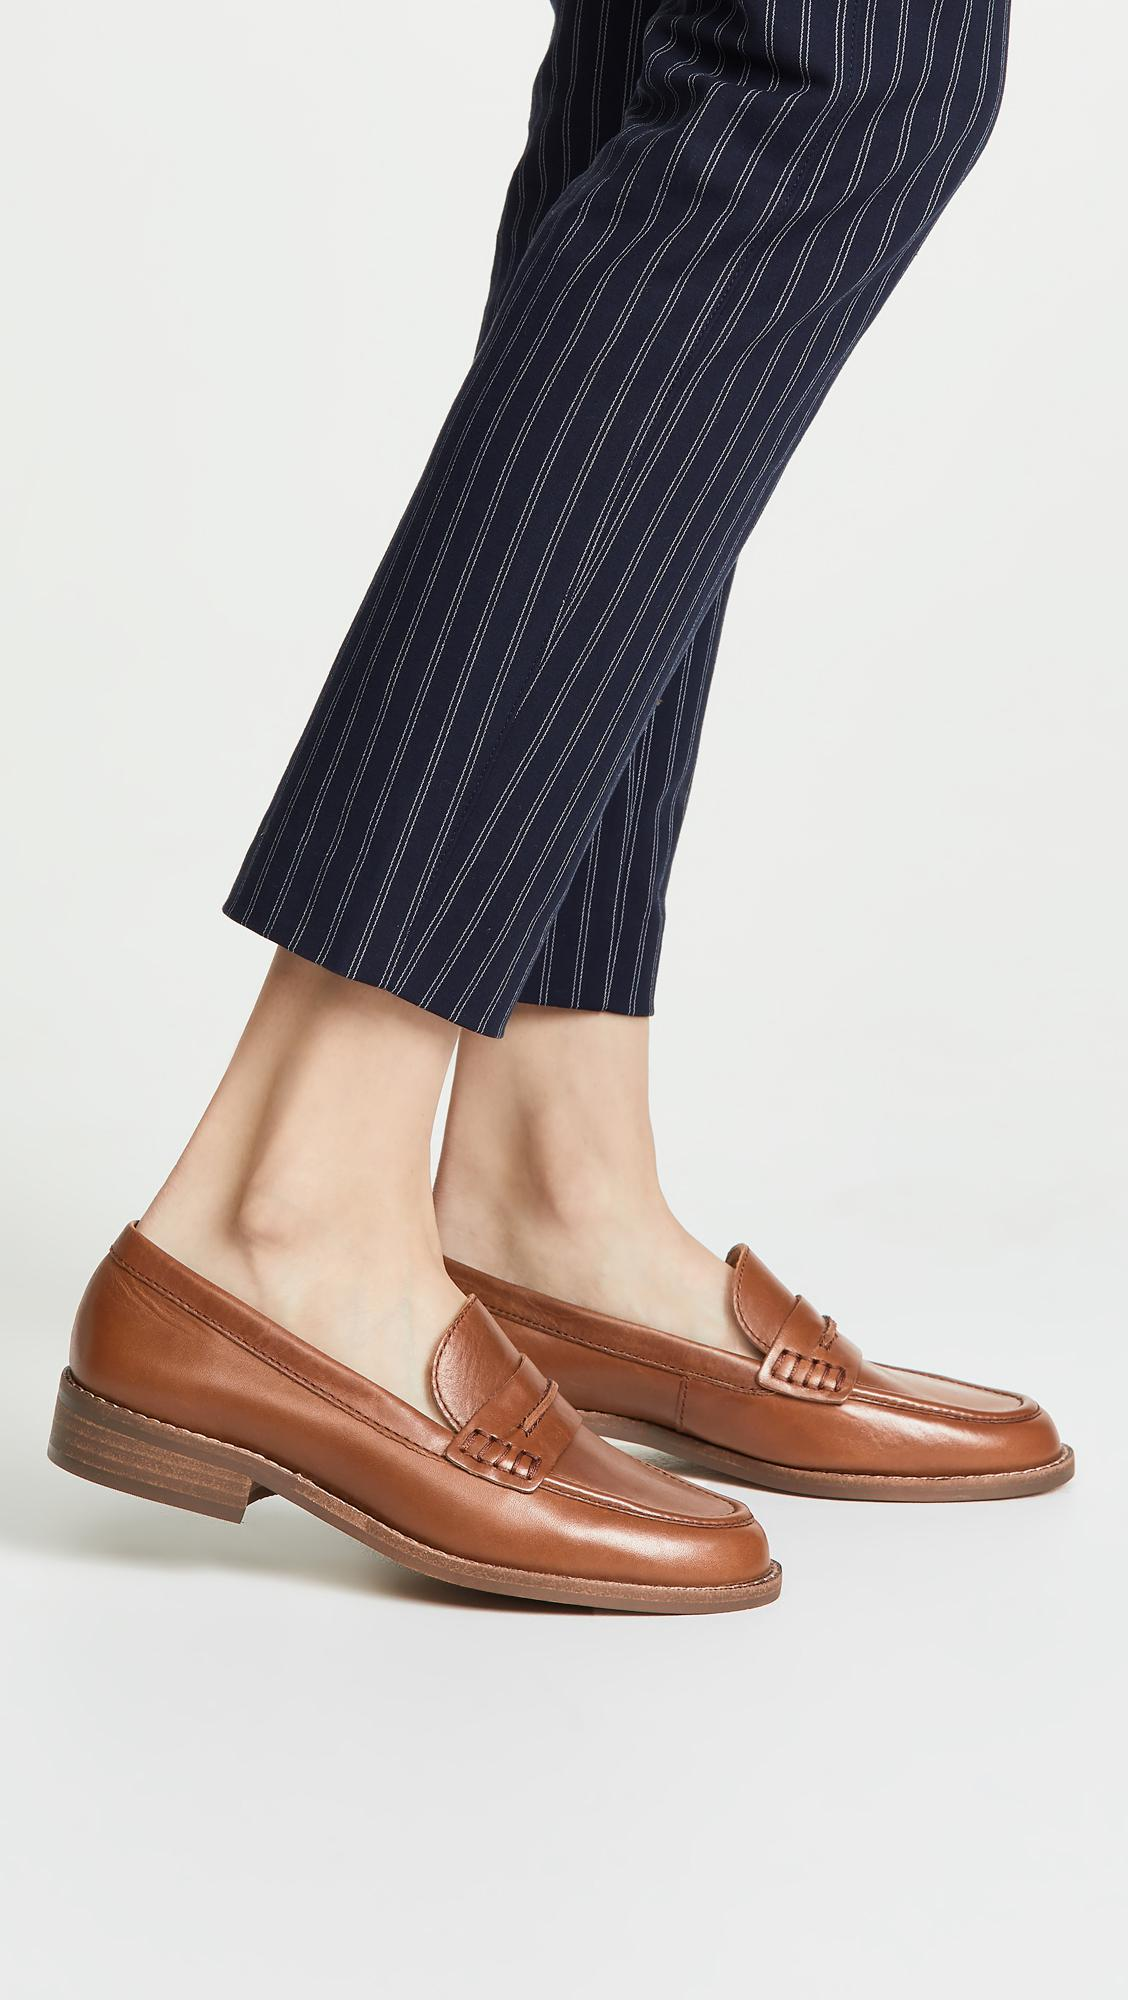 a31aa1b9c09 Madewell - Brown The Elinor Loafers - Lyst. View fullscreen